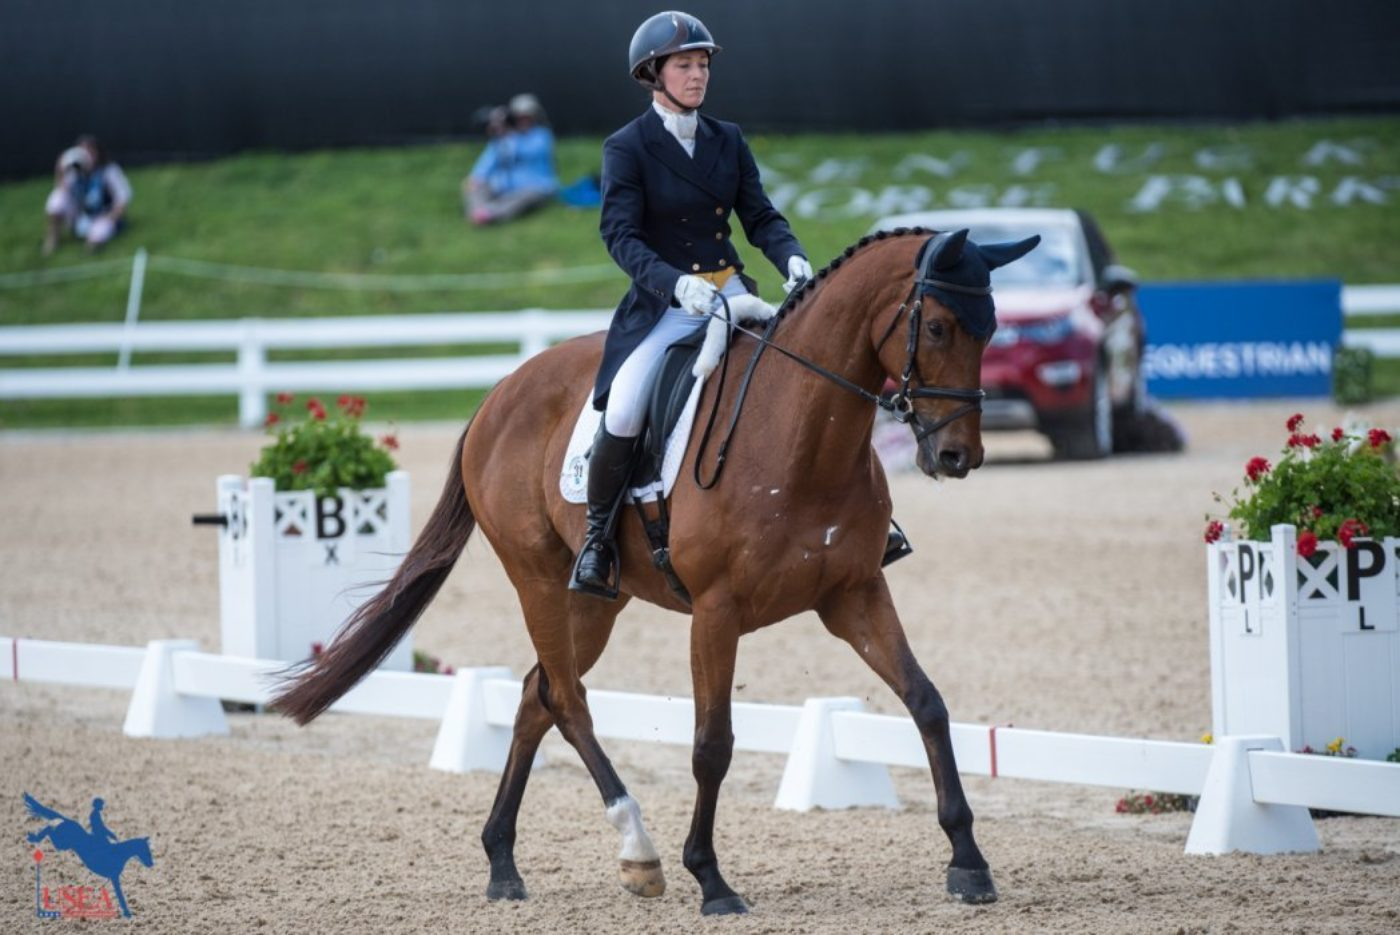 23rd - Kelly Prather and Truly Wiley - 59.8